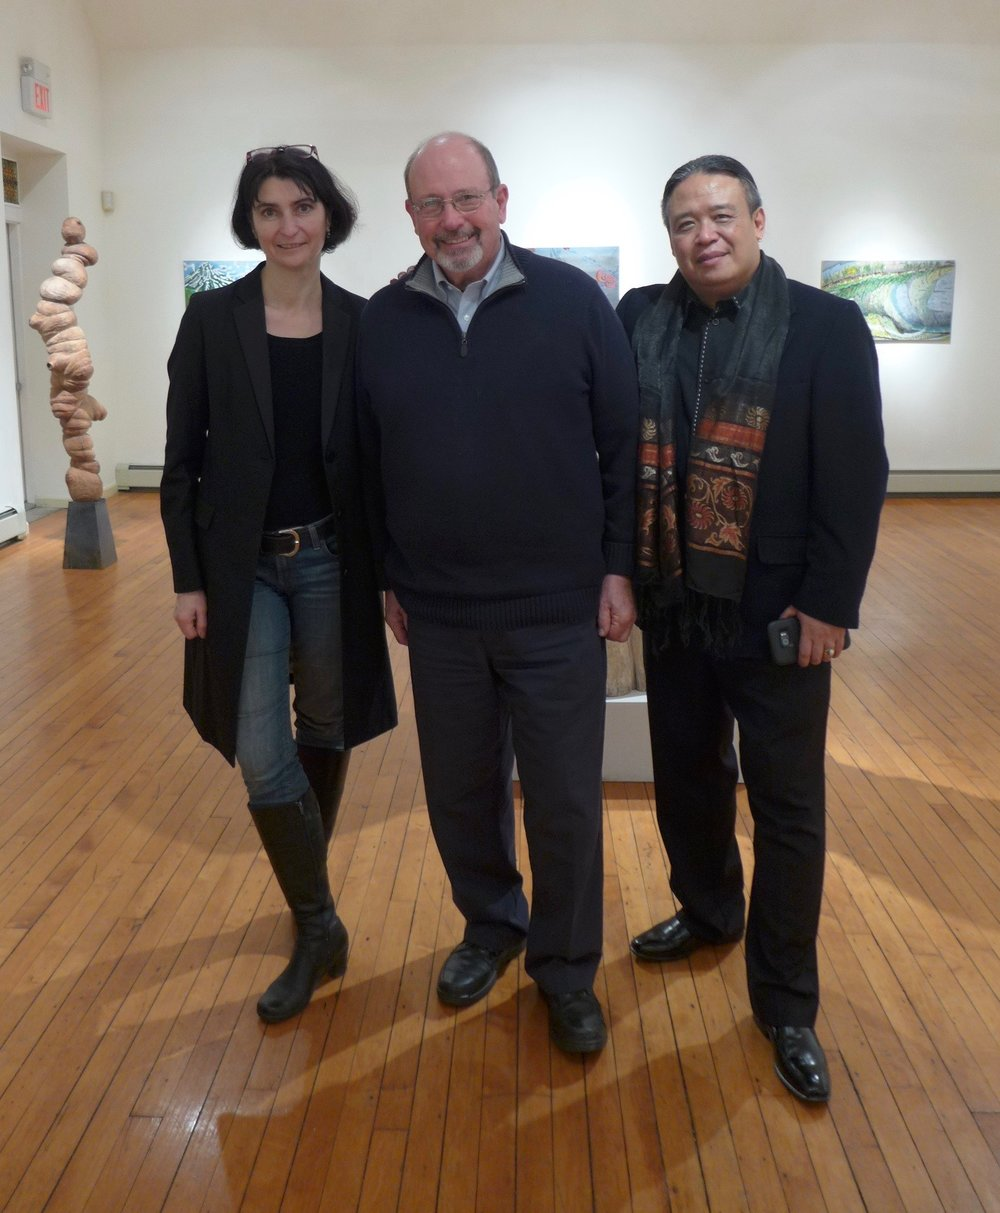 With friend Bill Graziano and curator/director of the gallery Tjokorda  Gde  Arsa Artha, following installation.